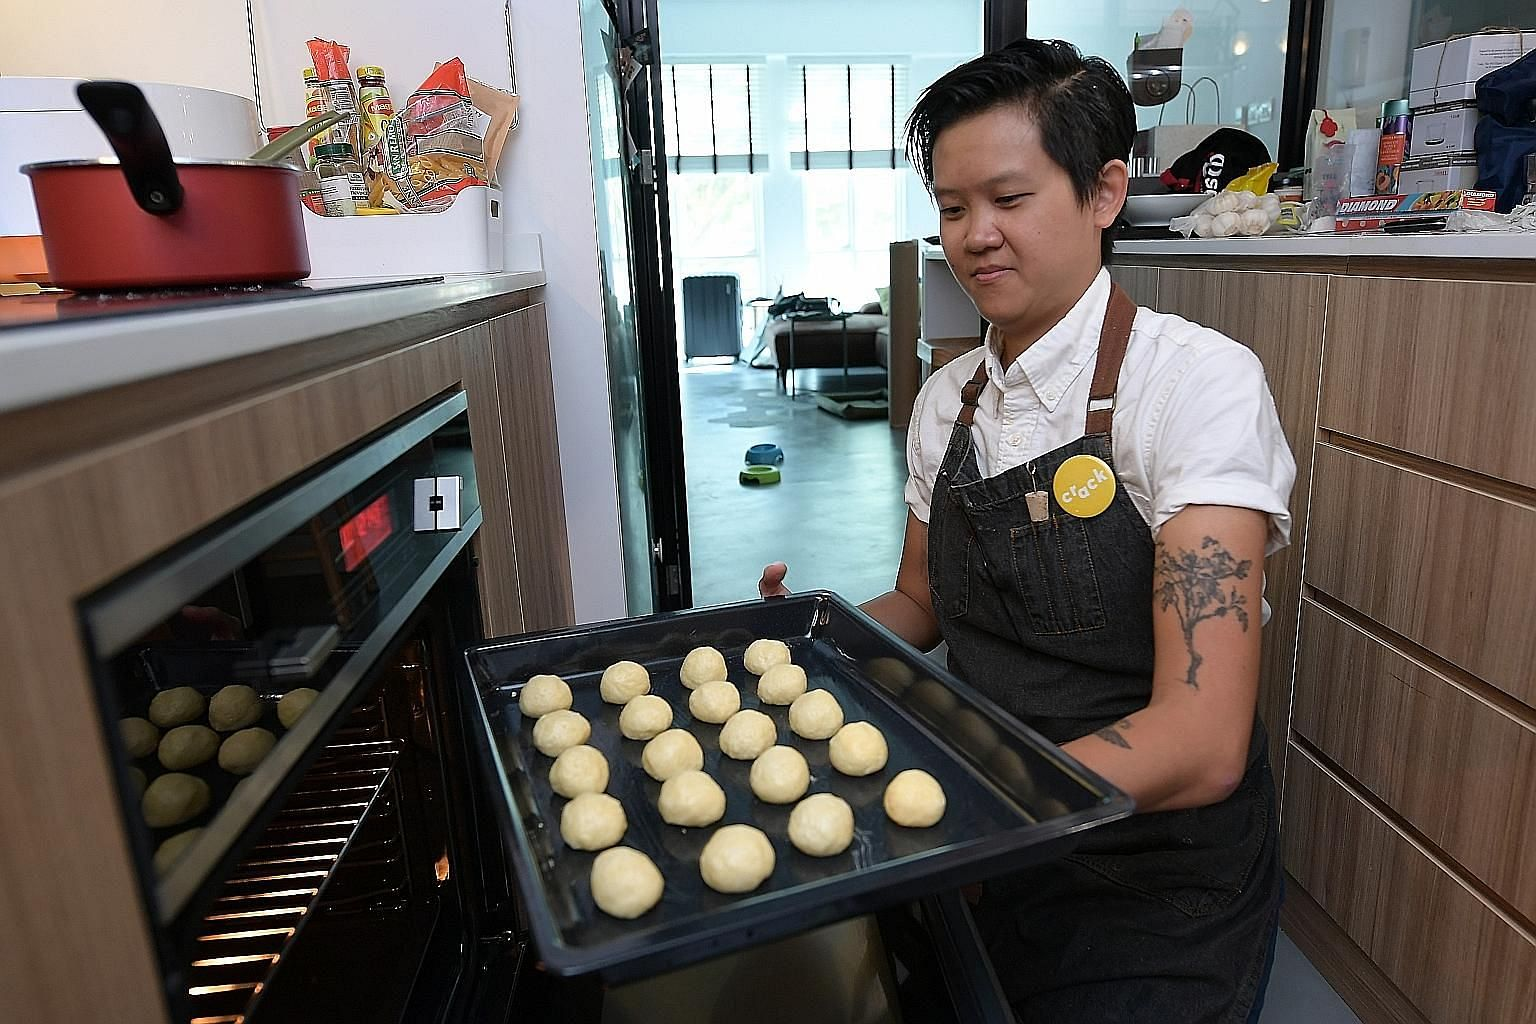 Ms Lynette Zheng went from lawyer to chef as she finds most joy in the kitchen. She set up a pop-up food business, Crack, before starting a private supper club at her own home. This month, she is travelling to find out about new cuisines and how diff